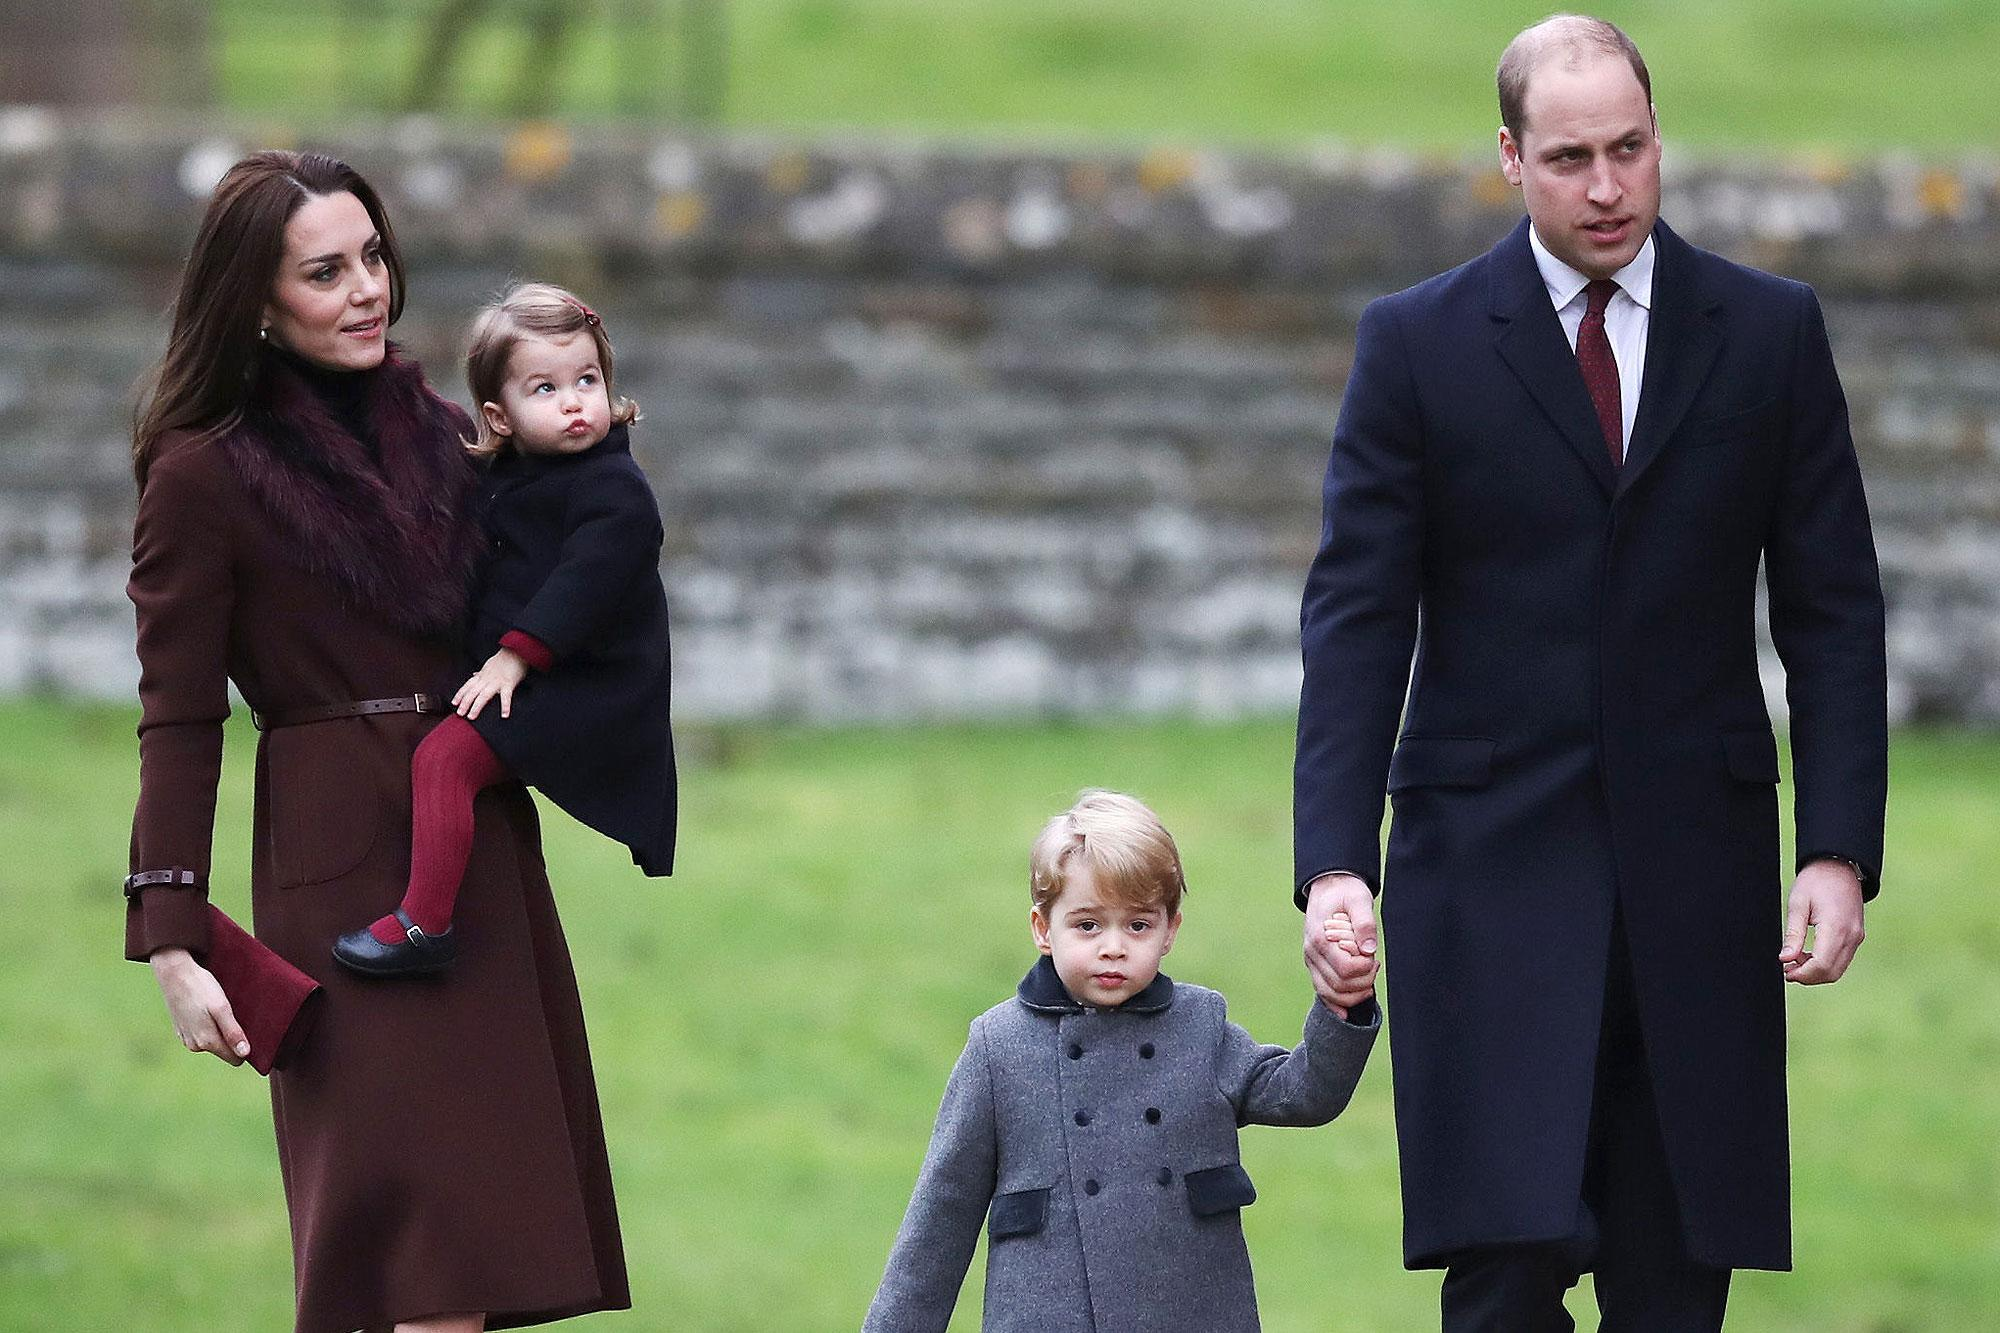 Prince William and Princess Kate Are Moving to London! All About Their School Plans for George and Charlotte